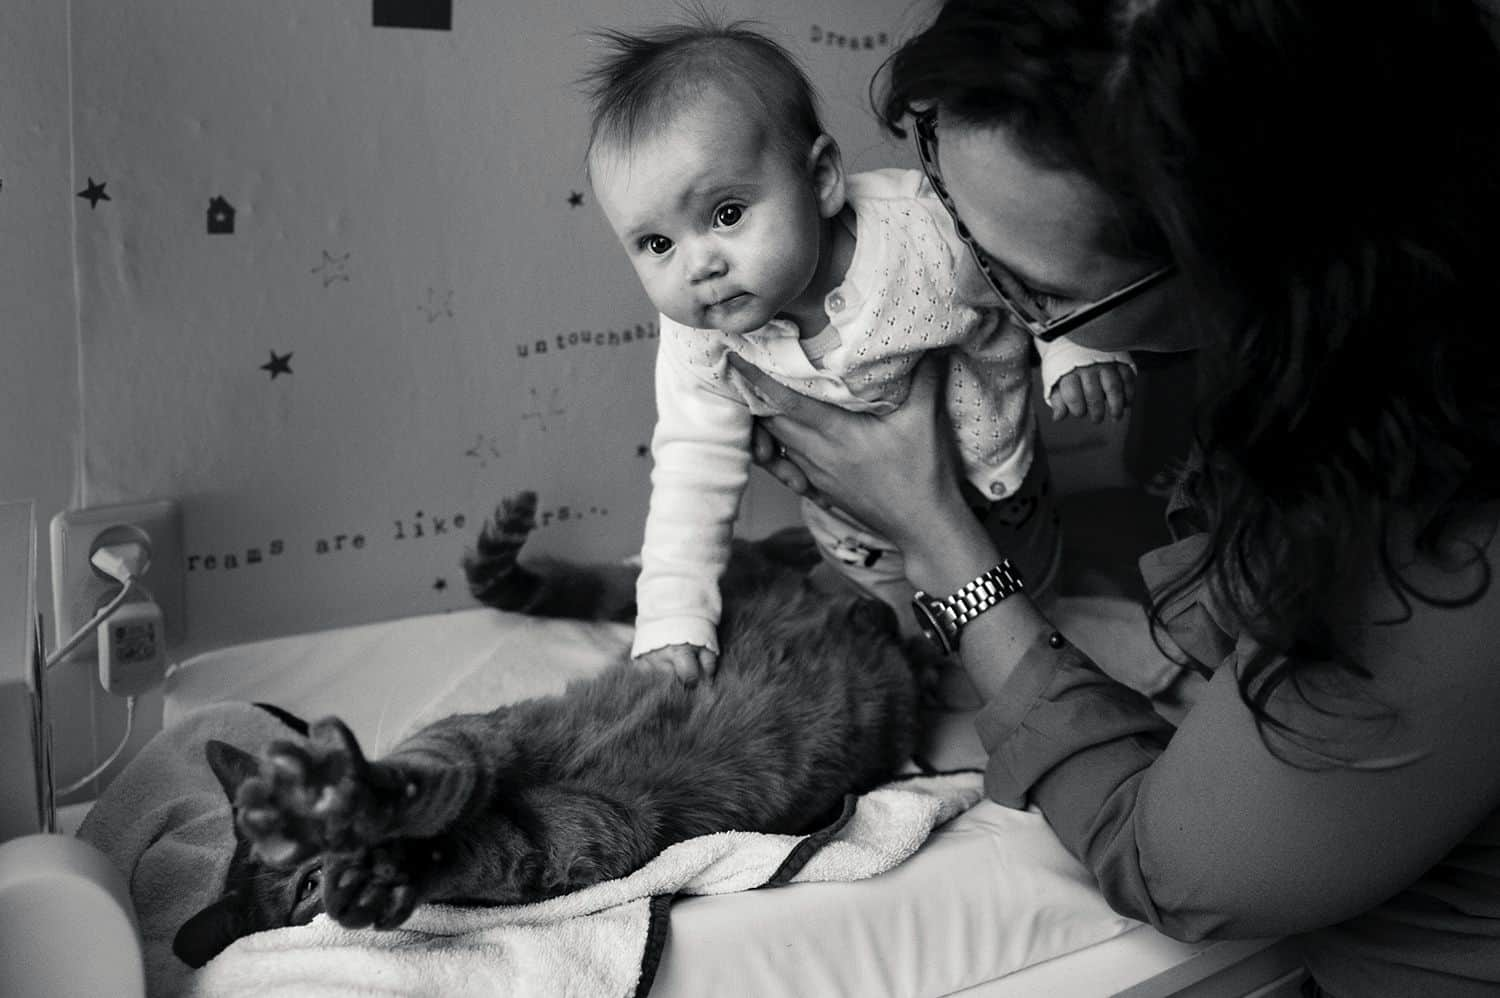 A mom holds her baby over the family cat so the child can pet the animal